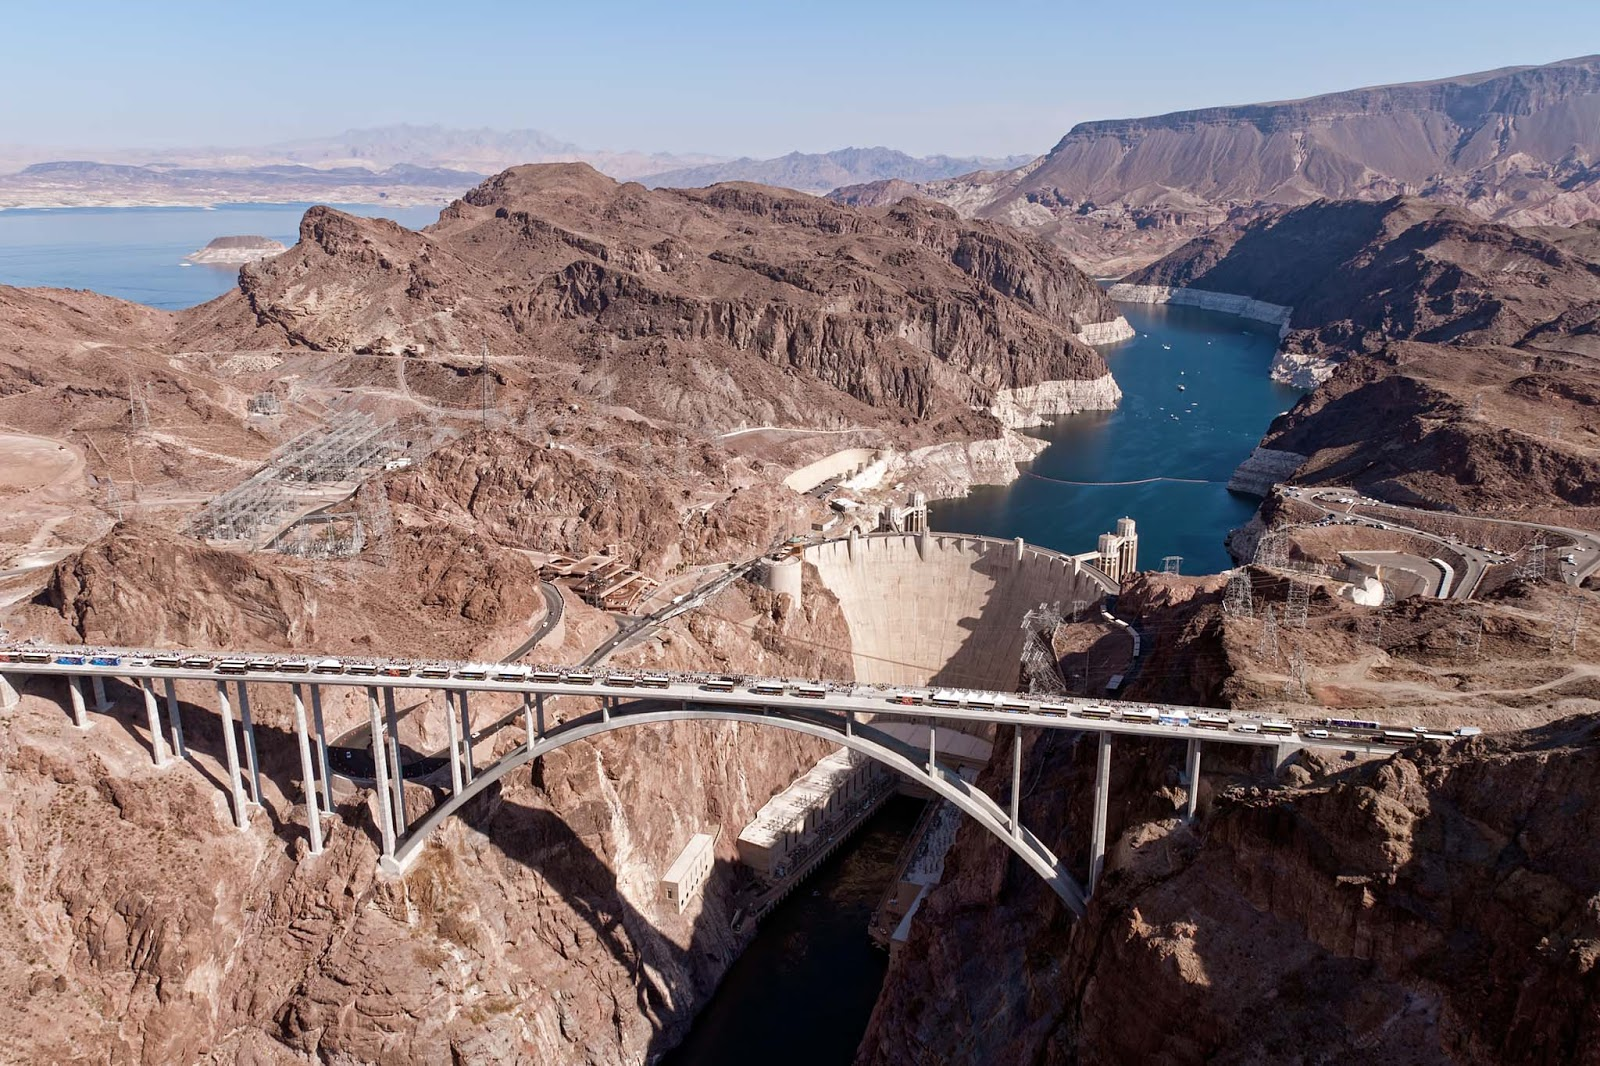 hoover dam overview Black canyon hoover dam rafting tour experience the colorado river below the hoover dam on this awesome black canyon hoover dam rafting tour this is a unique day trip, aboard a motor-assisted inflatable raft, through the spectacular black canyon - the natural gorge of the colorado river immediately below the hoover dam.